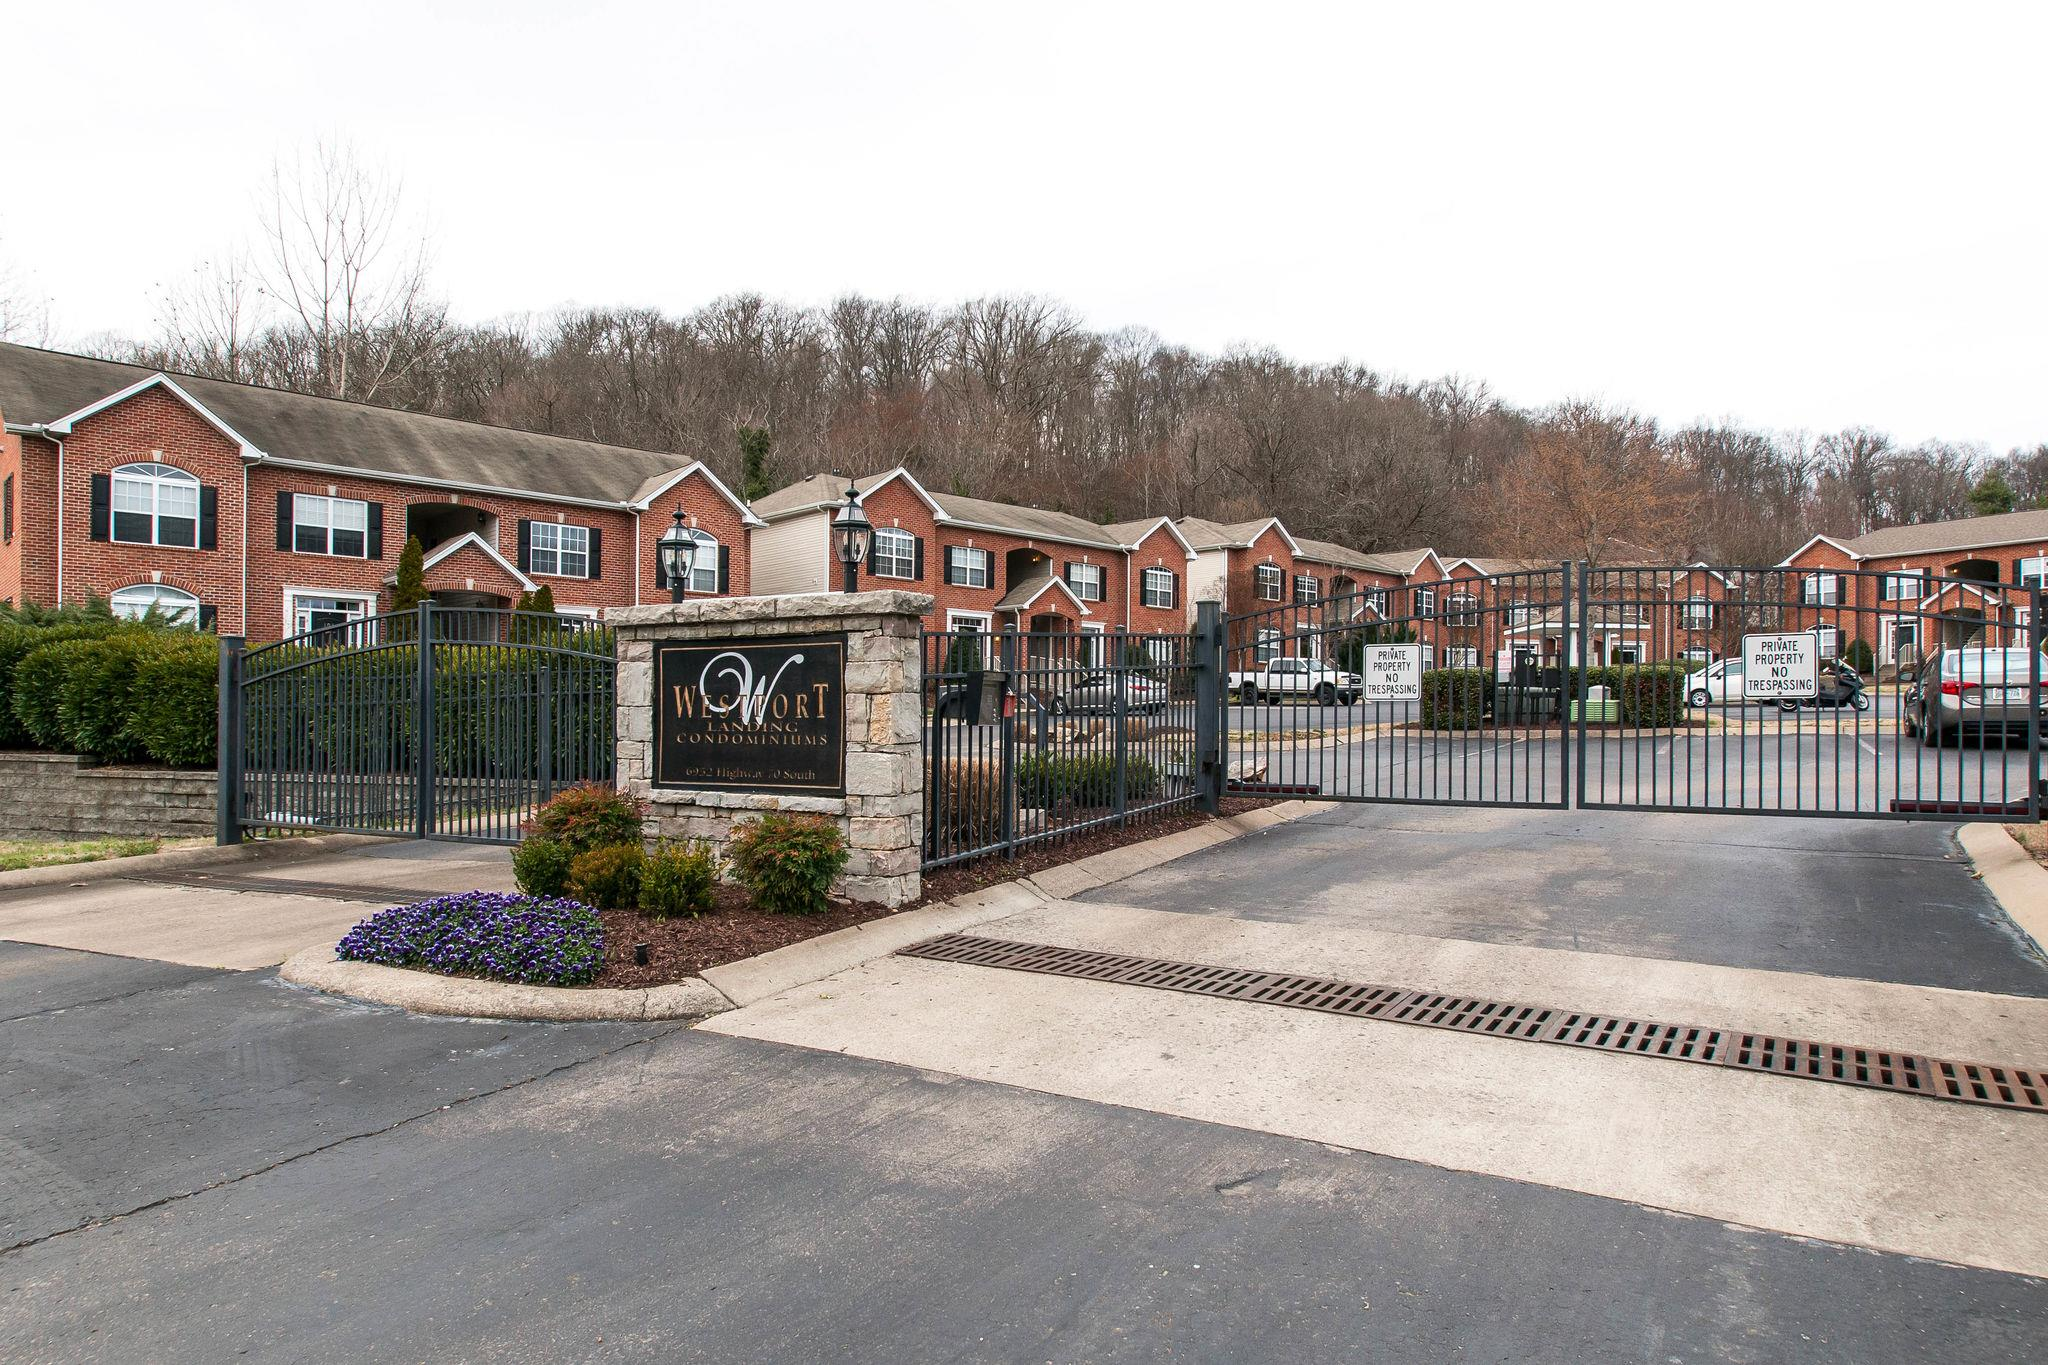 6952 Highway 70 S Apt 111, Bellevue in Davidson County County, TN 37221 Home for Sale